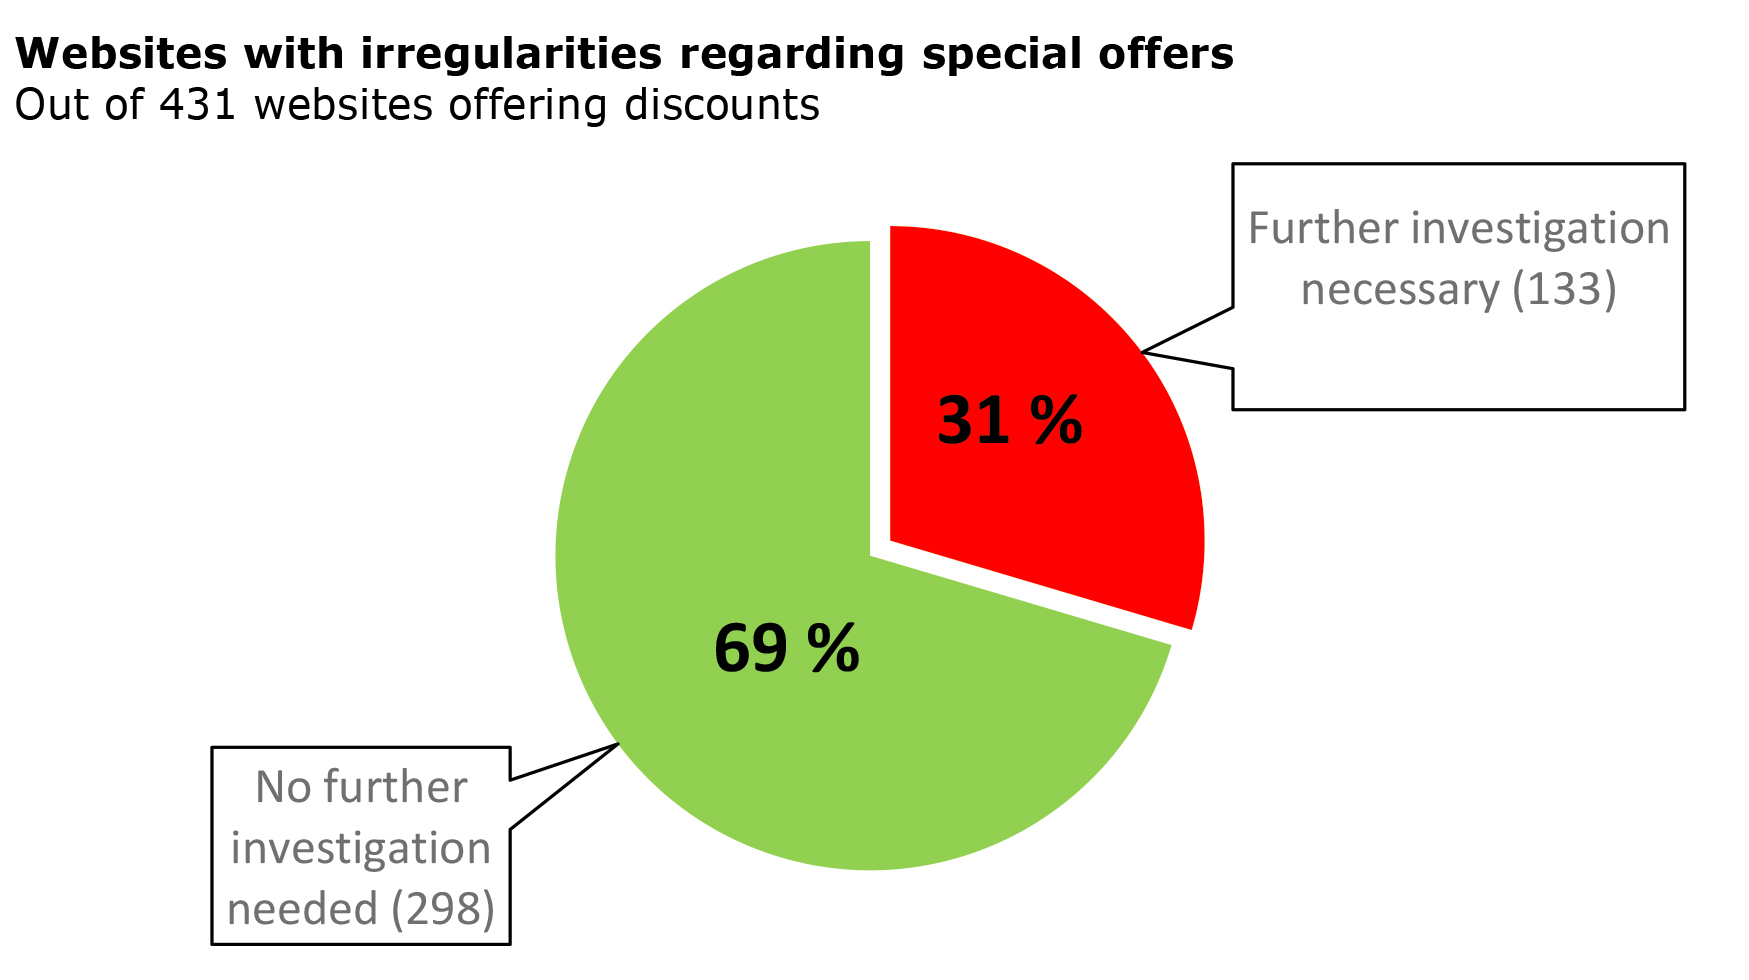 Websites with irregularities regarding special offers